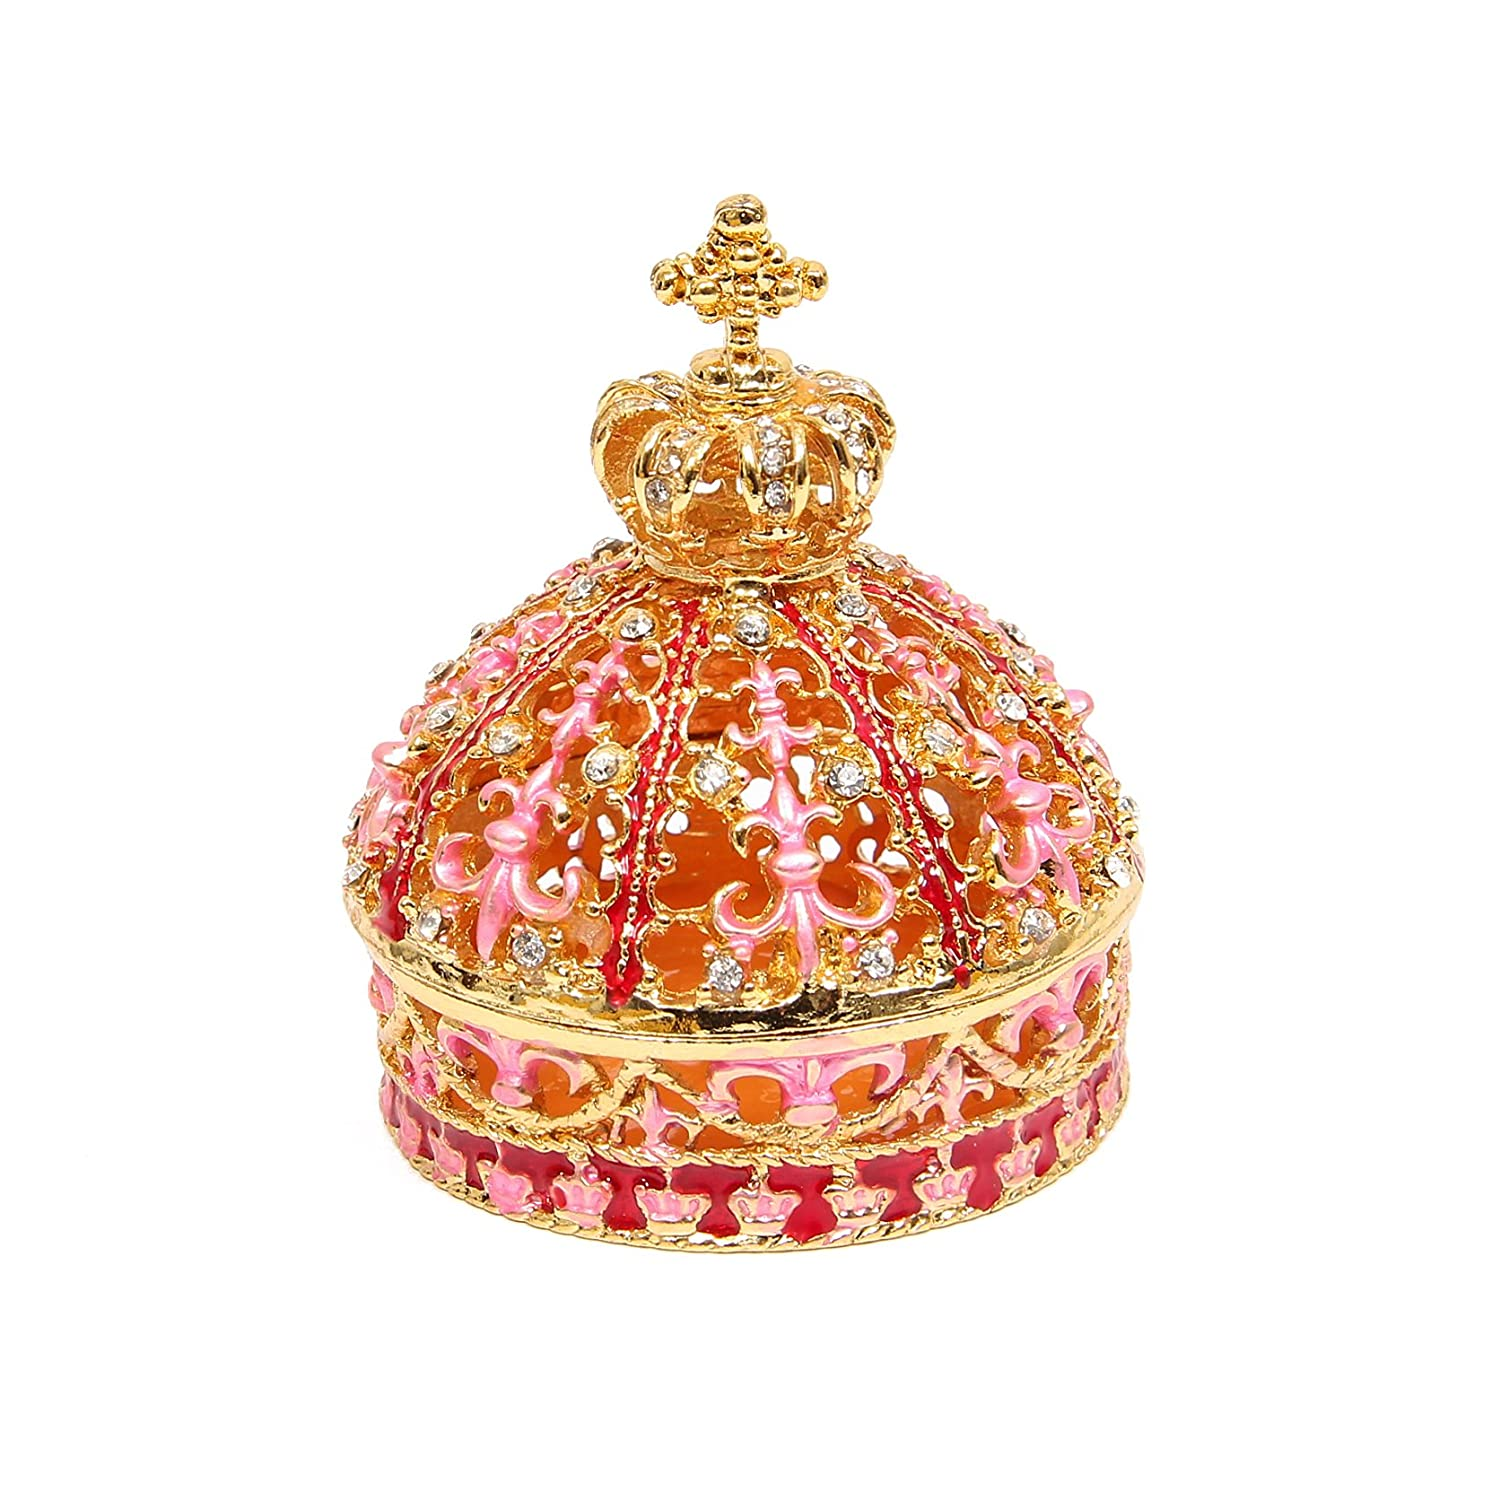 Enameled Crown Hinged Jewelry Trinket Box Unique Gift For Home Decor